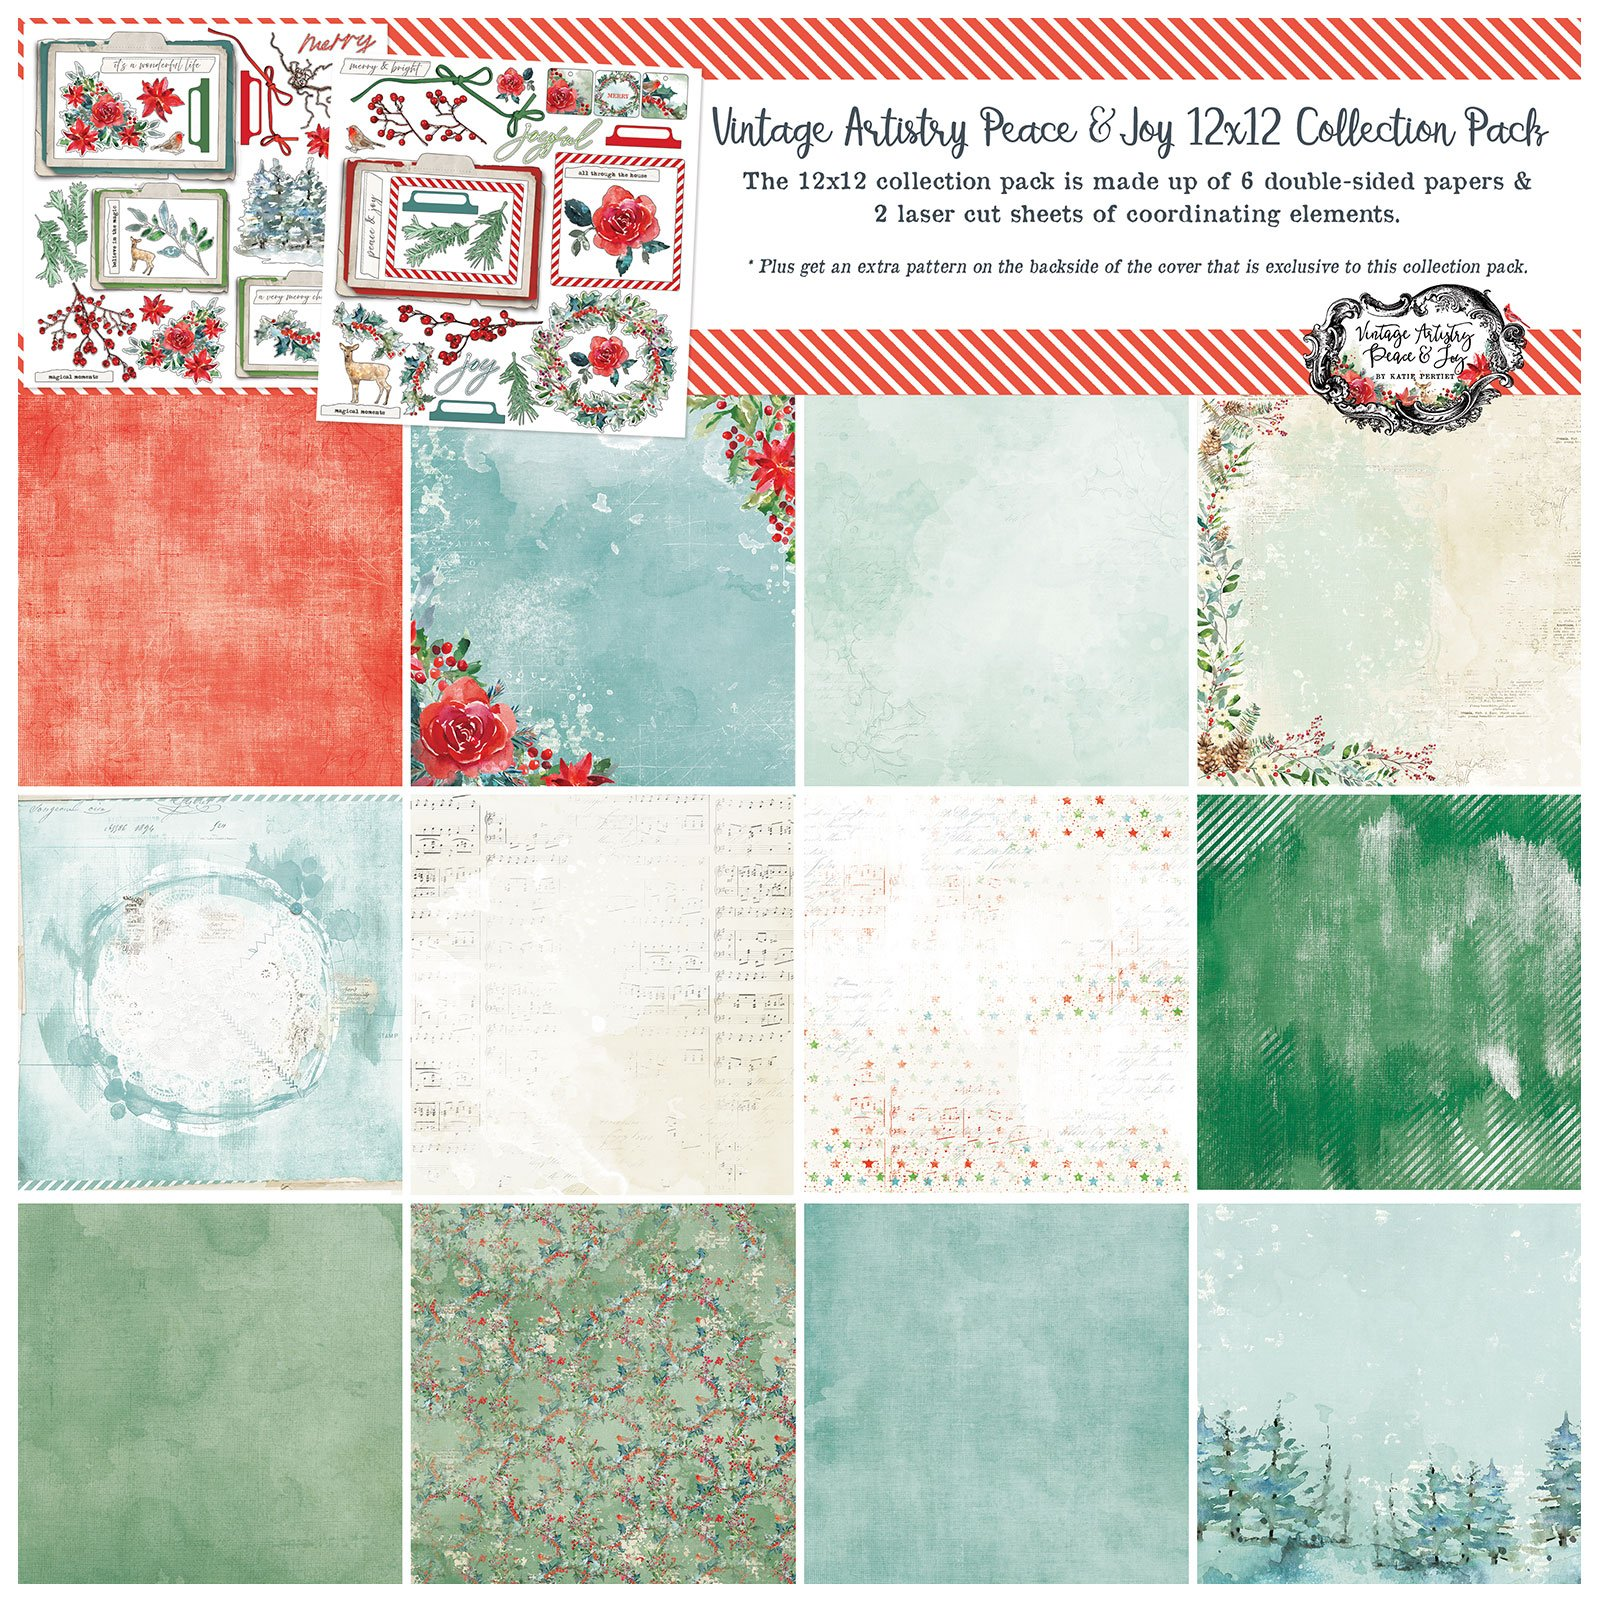 49 And Market - Vintage Artistry - Peace & Joy - 12x12 Collection Pack